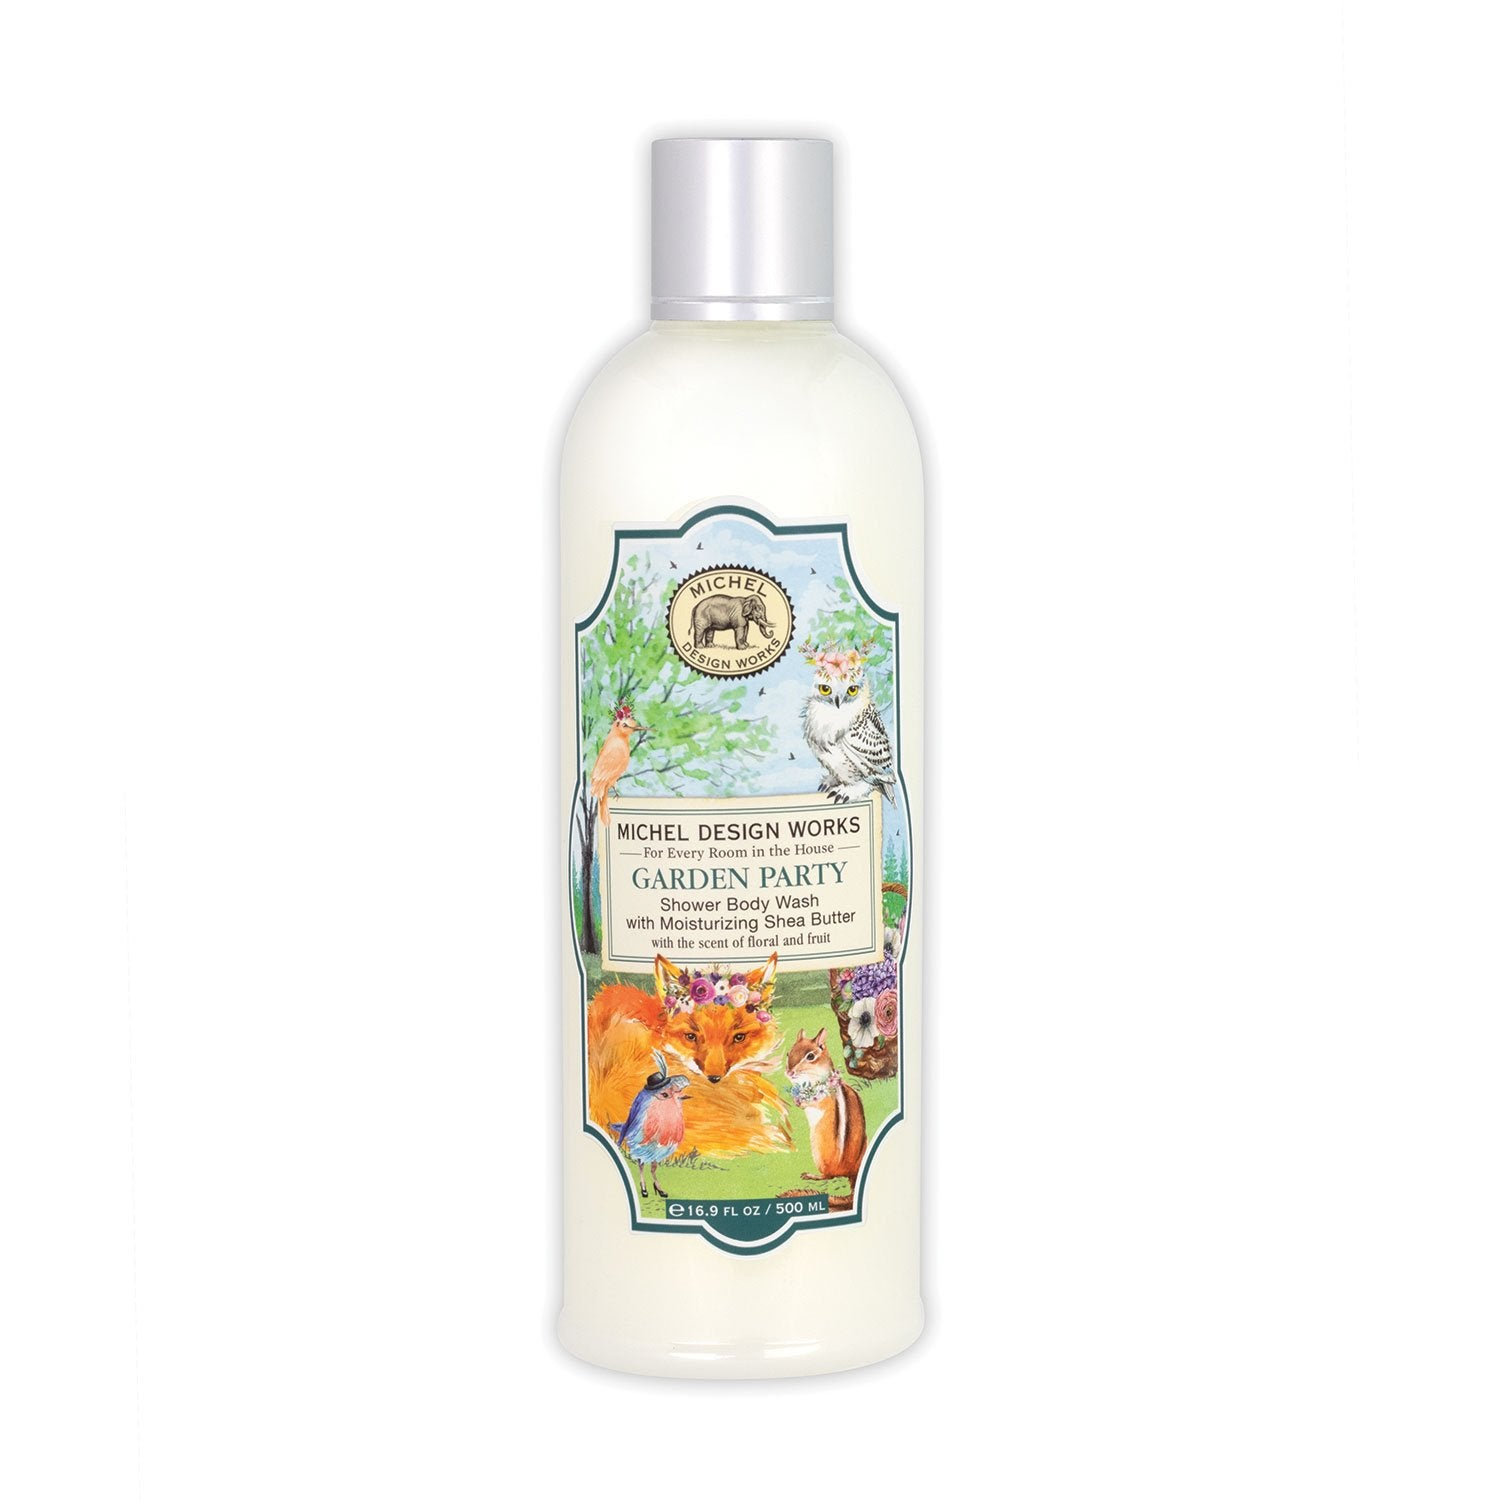 Garden Party Shower Body Wash